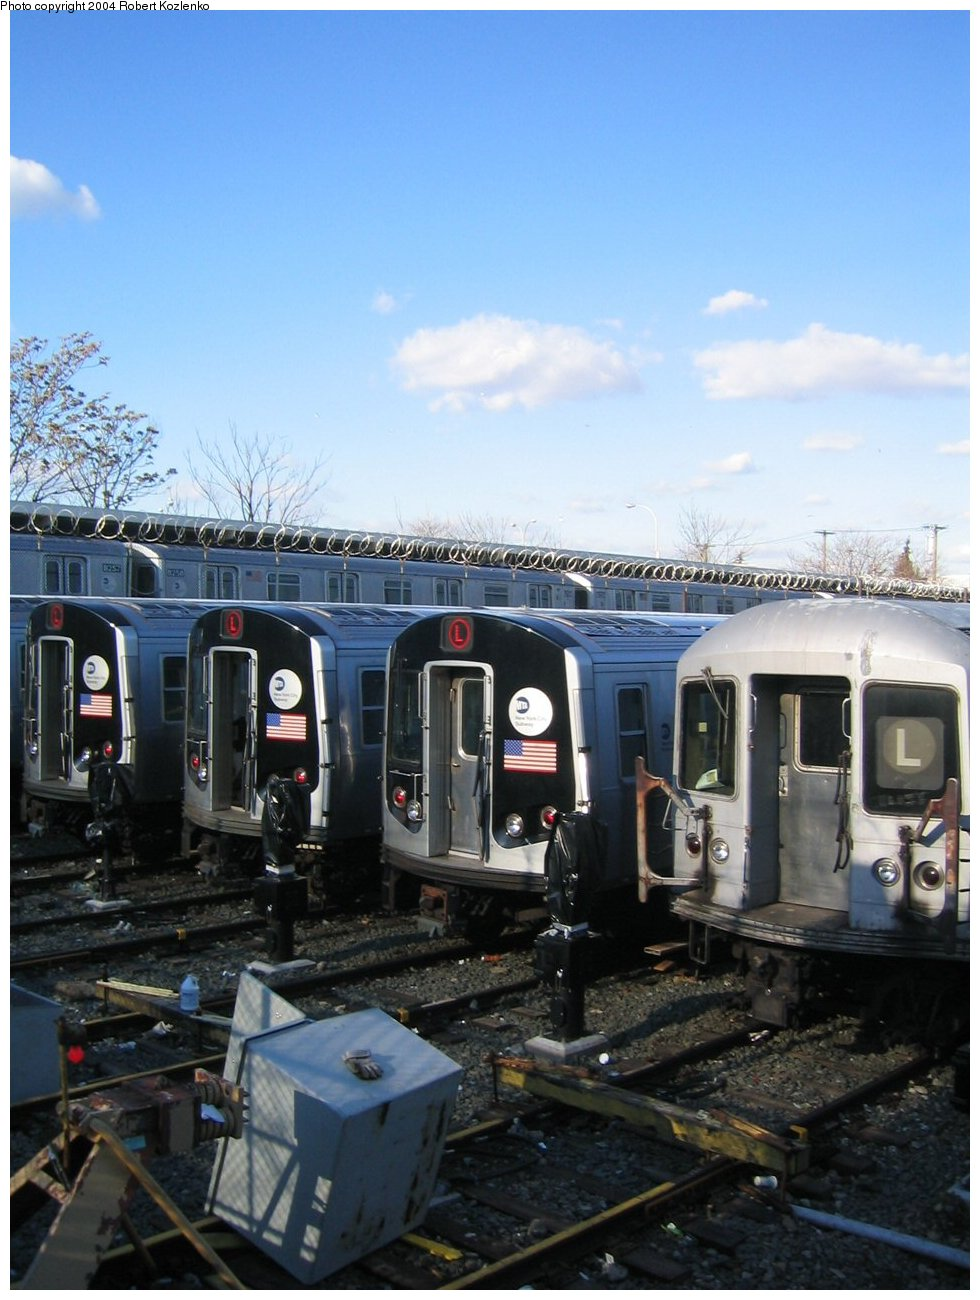 (215k, 980x1300)<br><b>Country:</b> United States<br><b>City:</b> New York<br><b>System:</b> New York City Transit<br><b>Location:</b> Rockaway Parkway (Canarsie) Yard<br><b>Car:</b> R-143 (Kawasaki, 2001-2002)  <br><b>Photo by:</b> Robert Kozlenko<br><b>Date:</b> 11/26/2004<br><b>Viewed (this week/total):</b> 1 / 4700